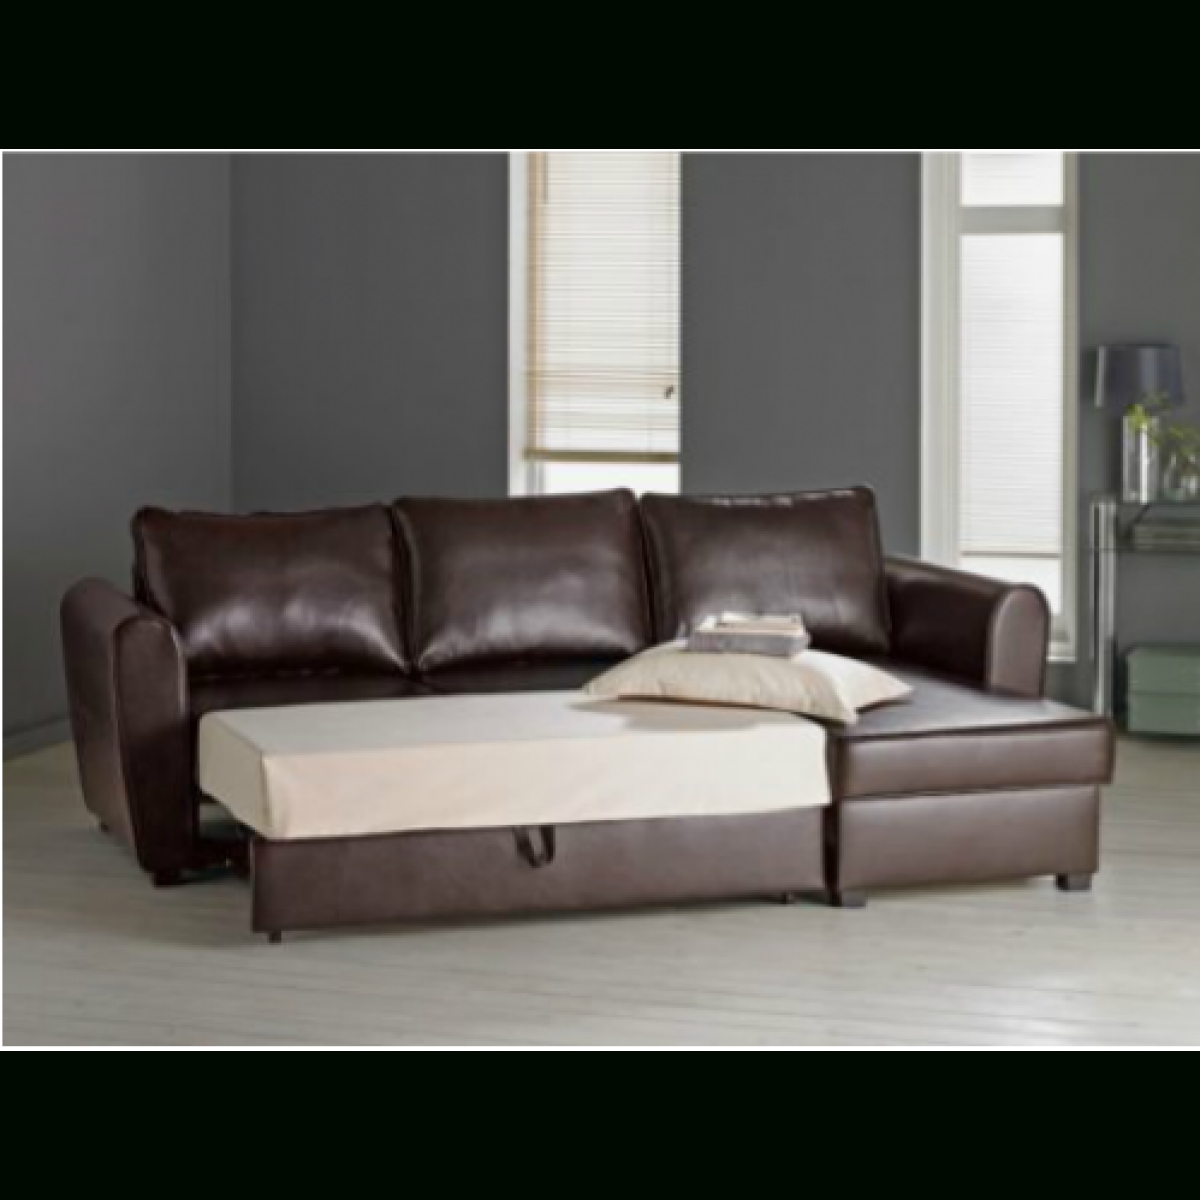 New Siena Fabric Corner Sofa Bed With Storage – Charcoal Inside Leather Corner Sofa Bed (Image 17 of 20)